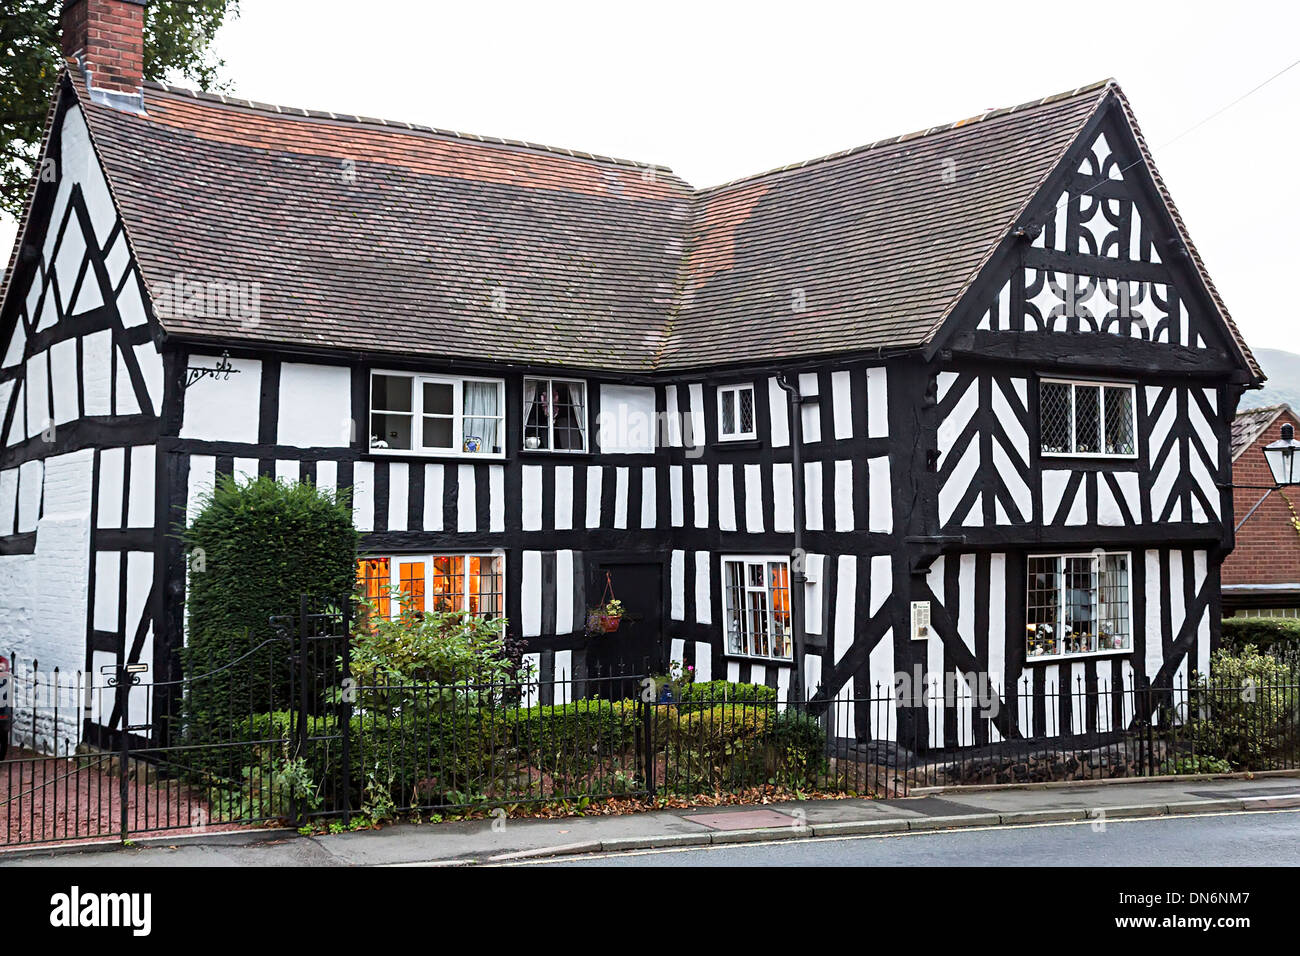 Tudor half timbered cottage, Church Stretton, Shropshire - Stock Image